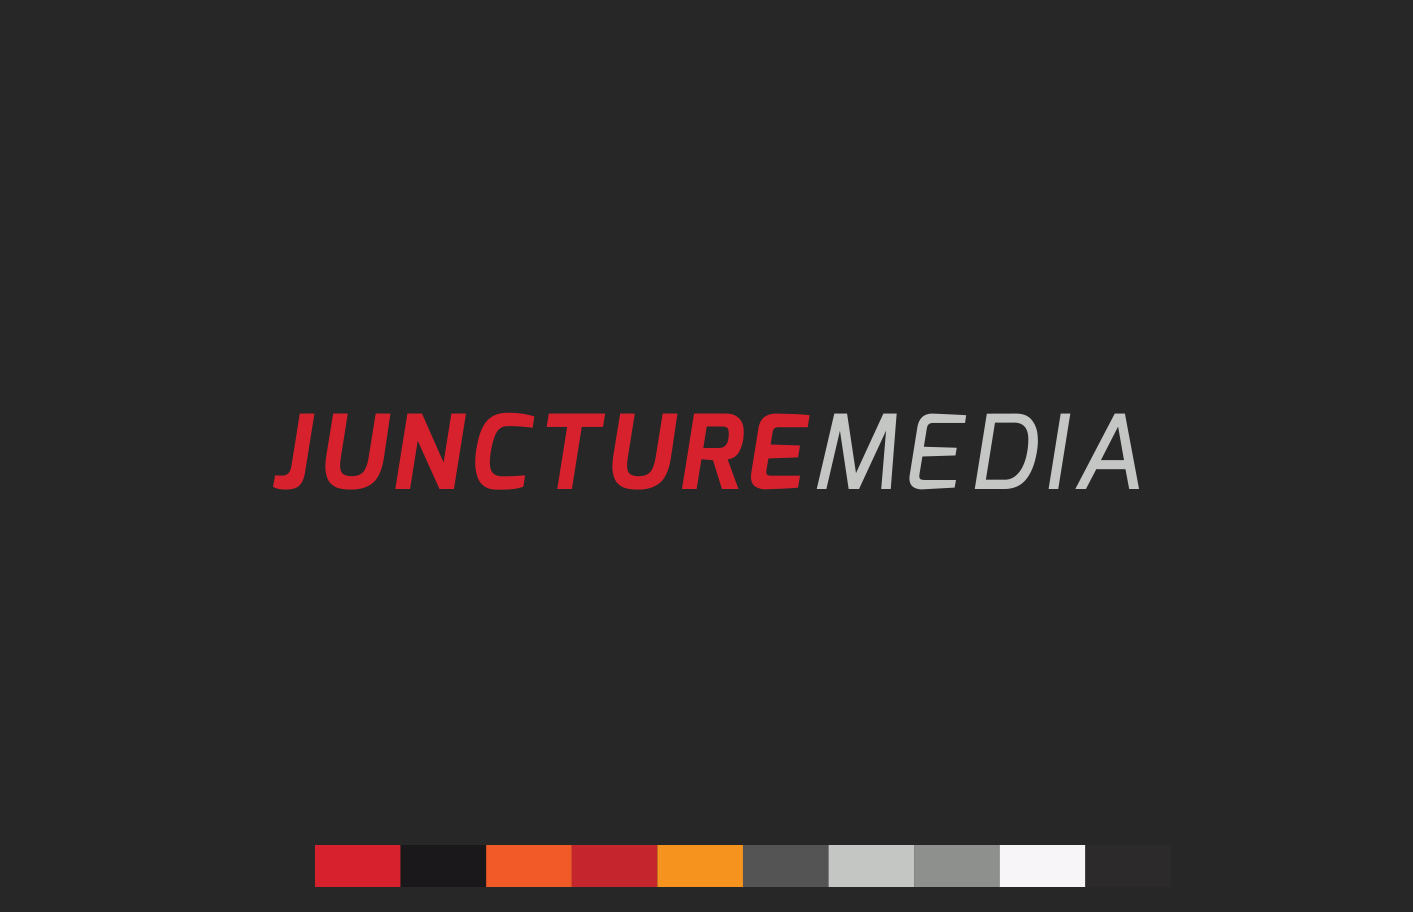 Logo Design and Branding Juncture Media